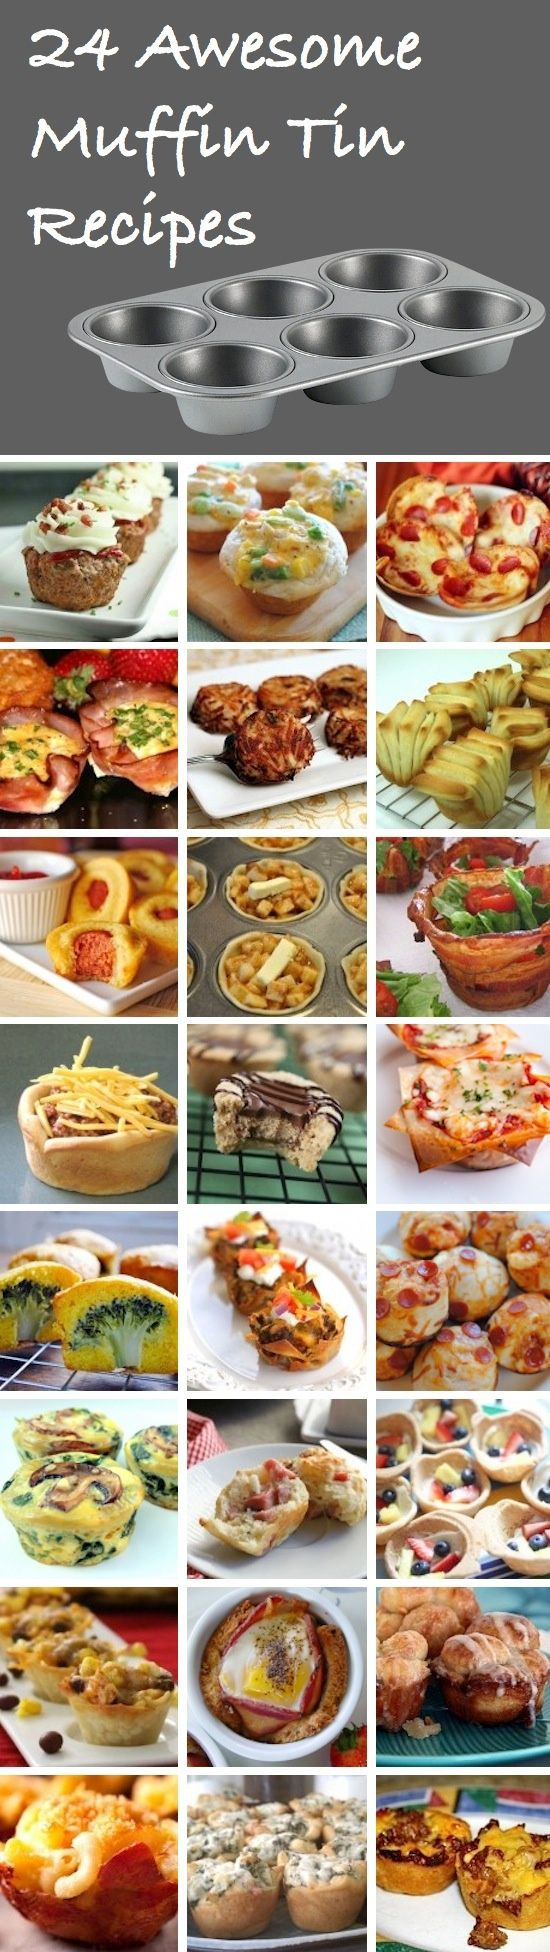 24 Awesome Muffin Tin Recipes | Do It And How